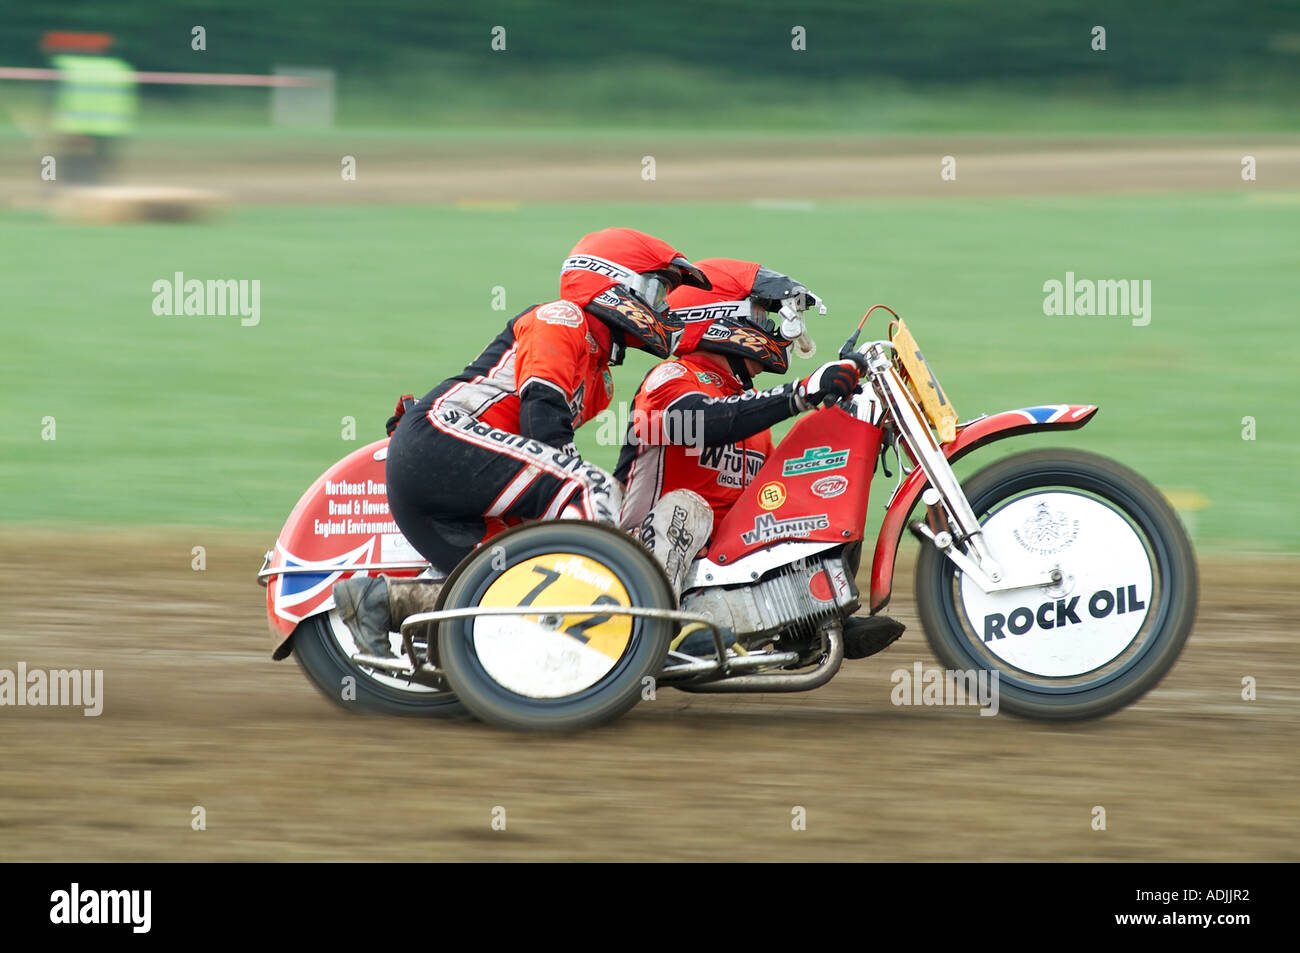 motorcycle sidecar racing stockfotos motorcycle sidecar racing bilder alamy. Black Bedroom Furniture Sets. Home Design Ideas